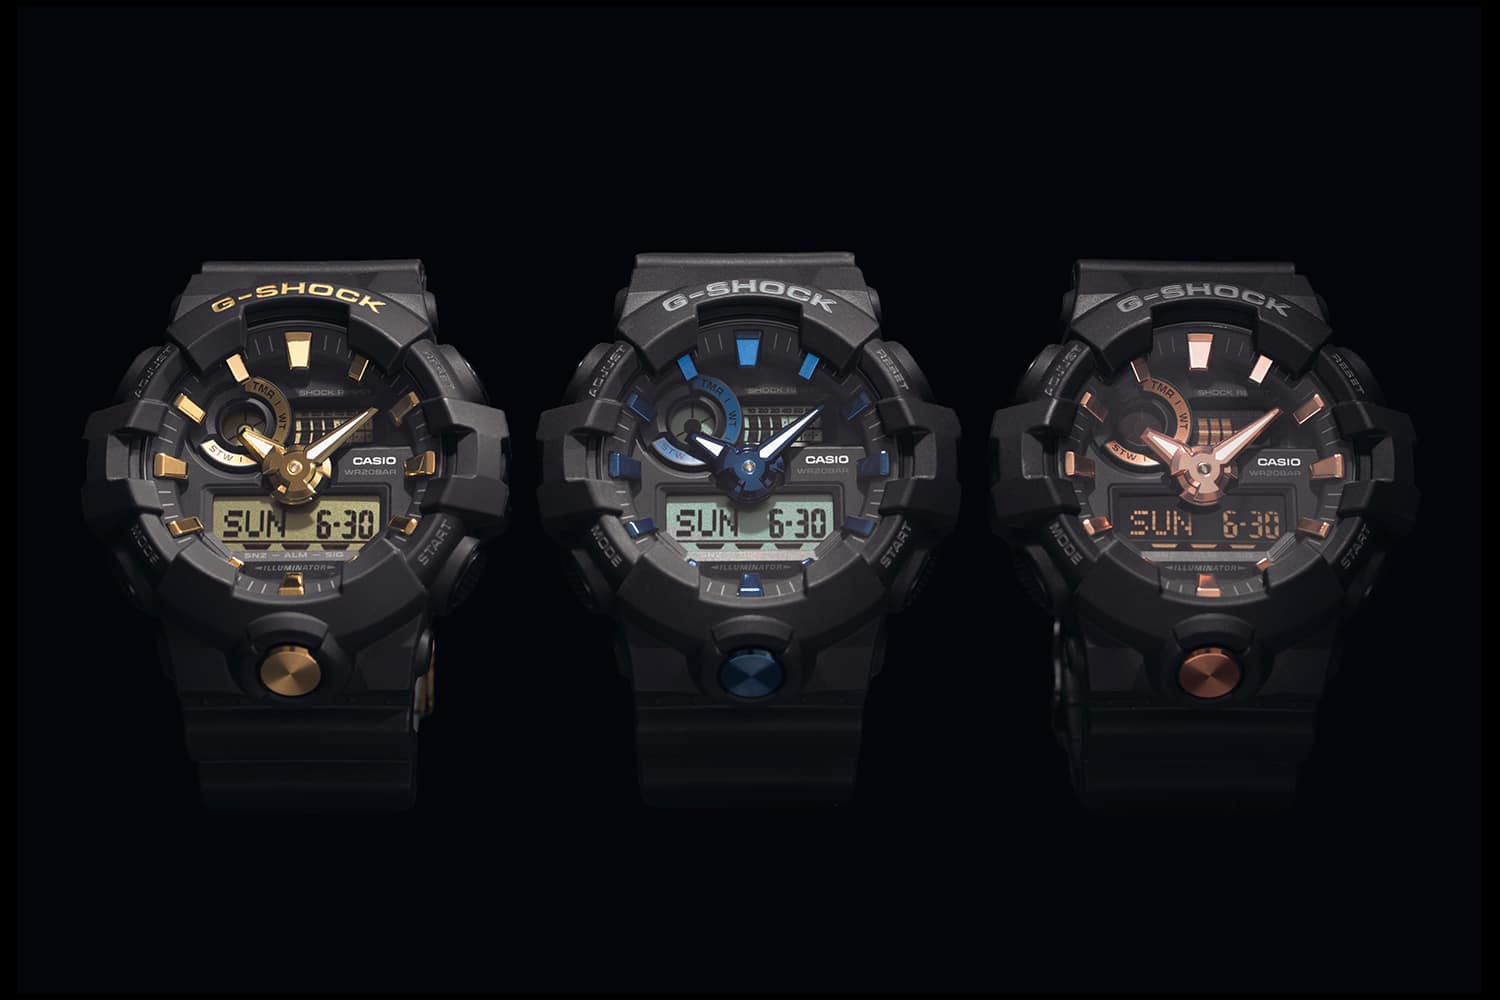 The Unbreakable G-SHOCK Watch: How Casio Created an Icon